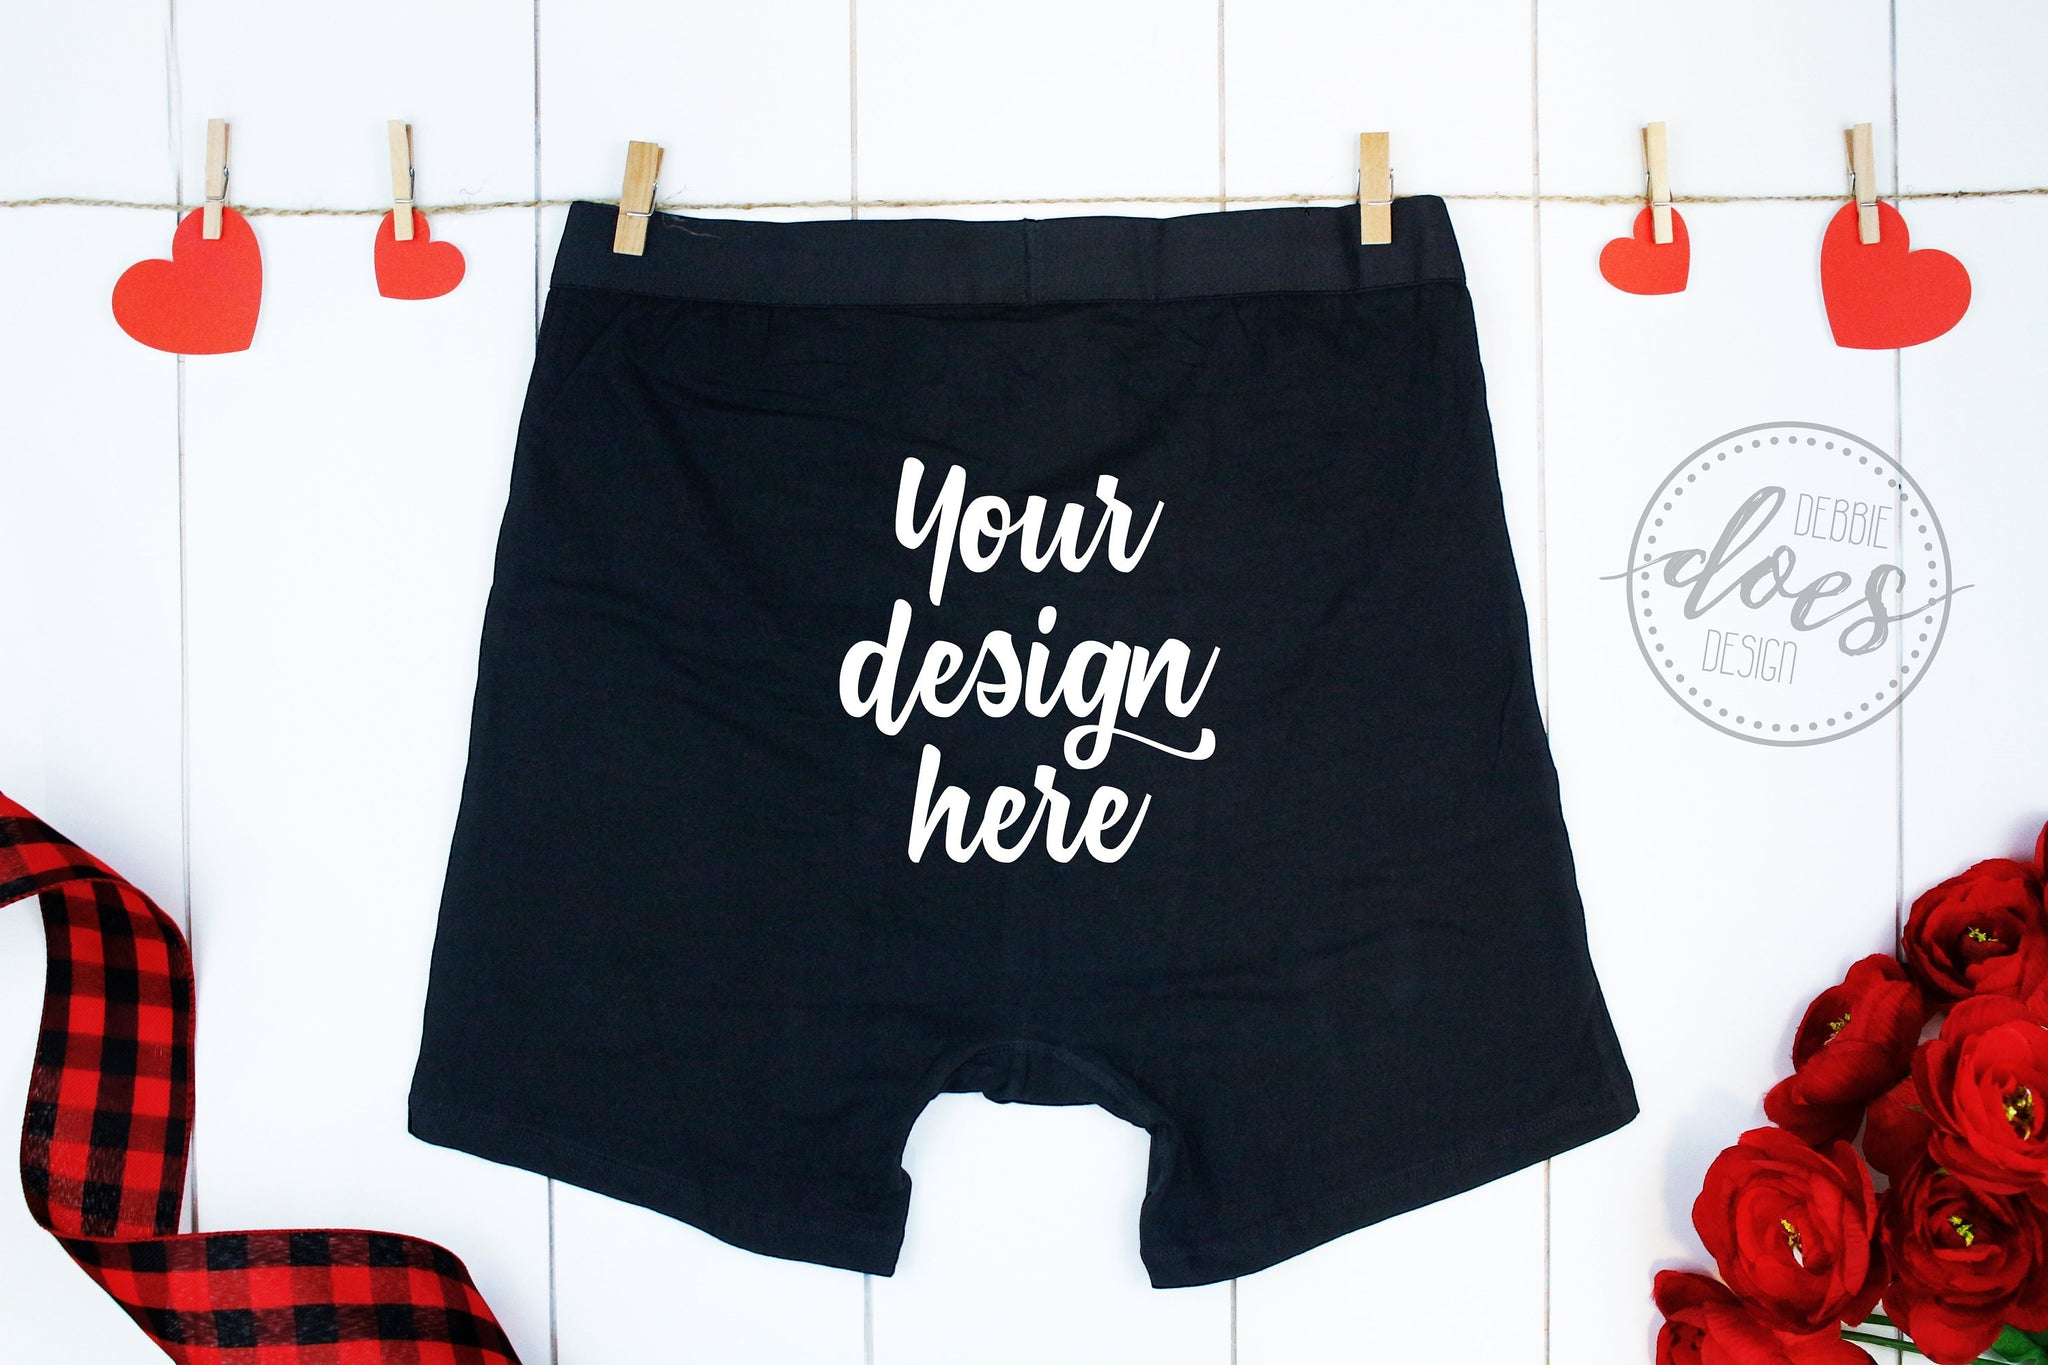 Black Boxer Briefs Mockup with Hearts and Roses | BACK VIEW | Valentines | Blank Mockup Photo Download